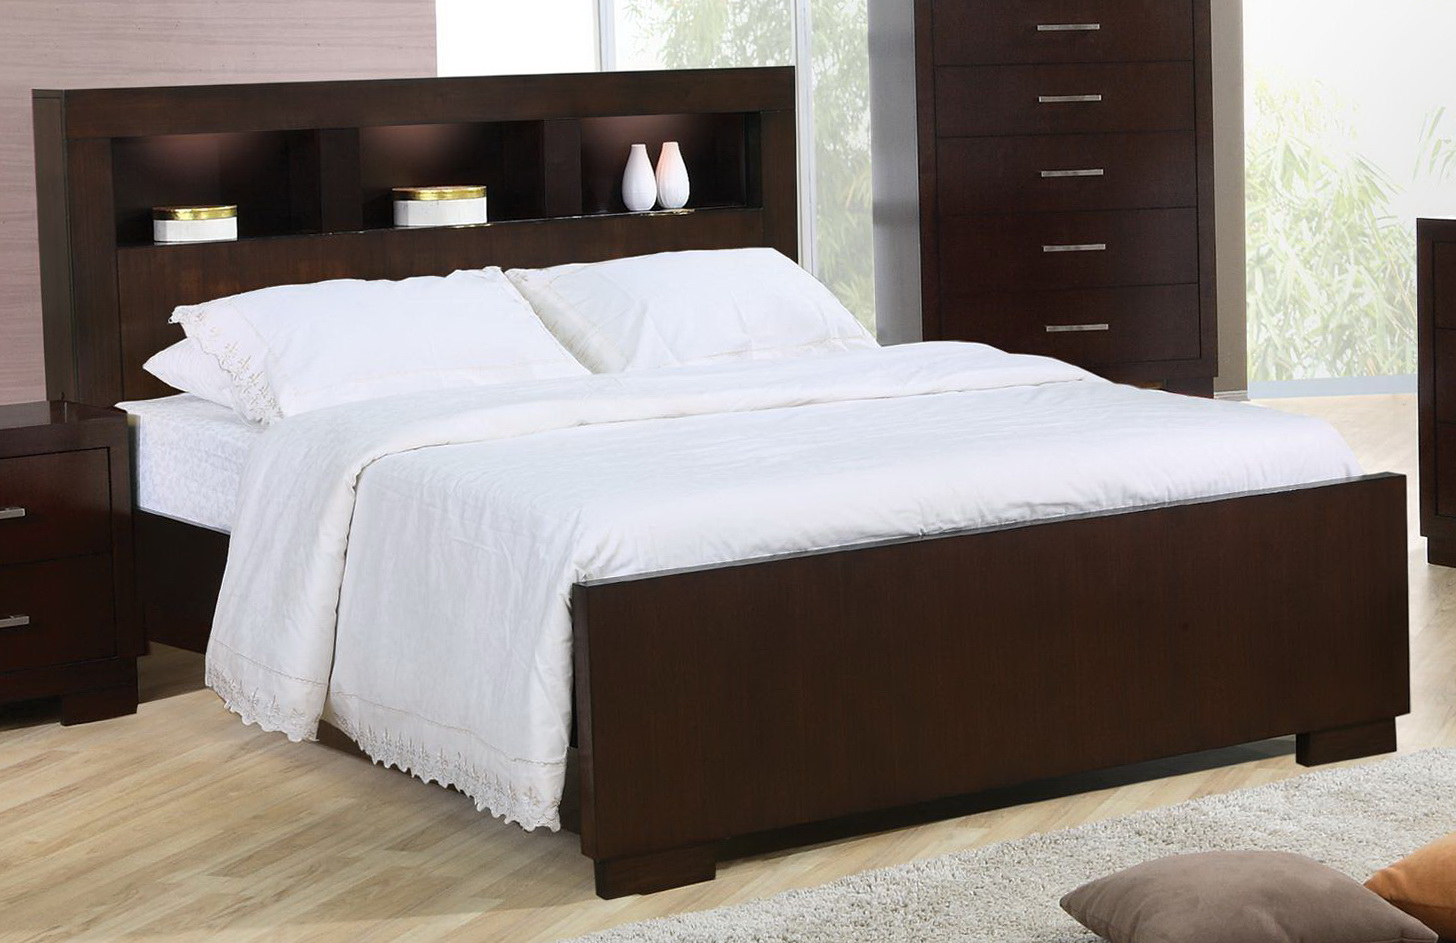 King Headboard With Storage Compartment